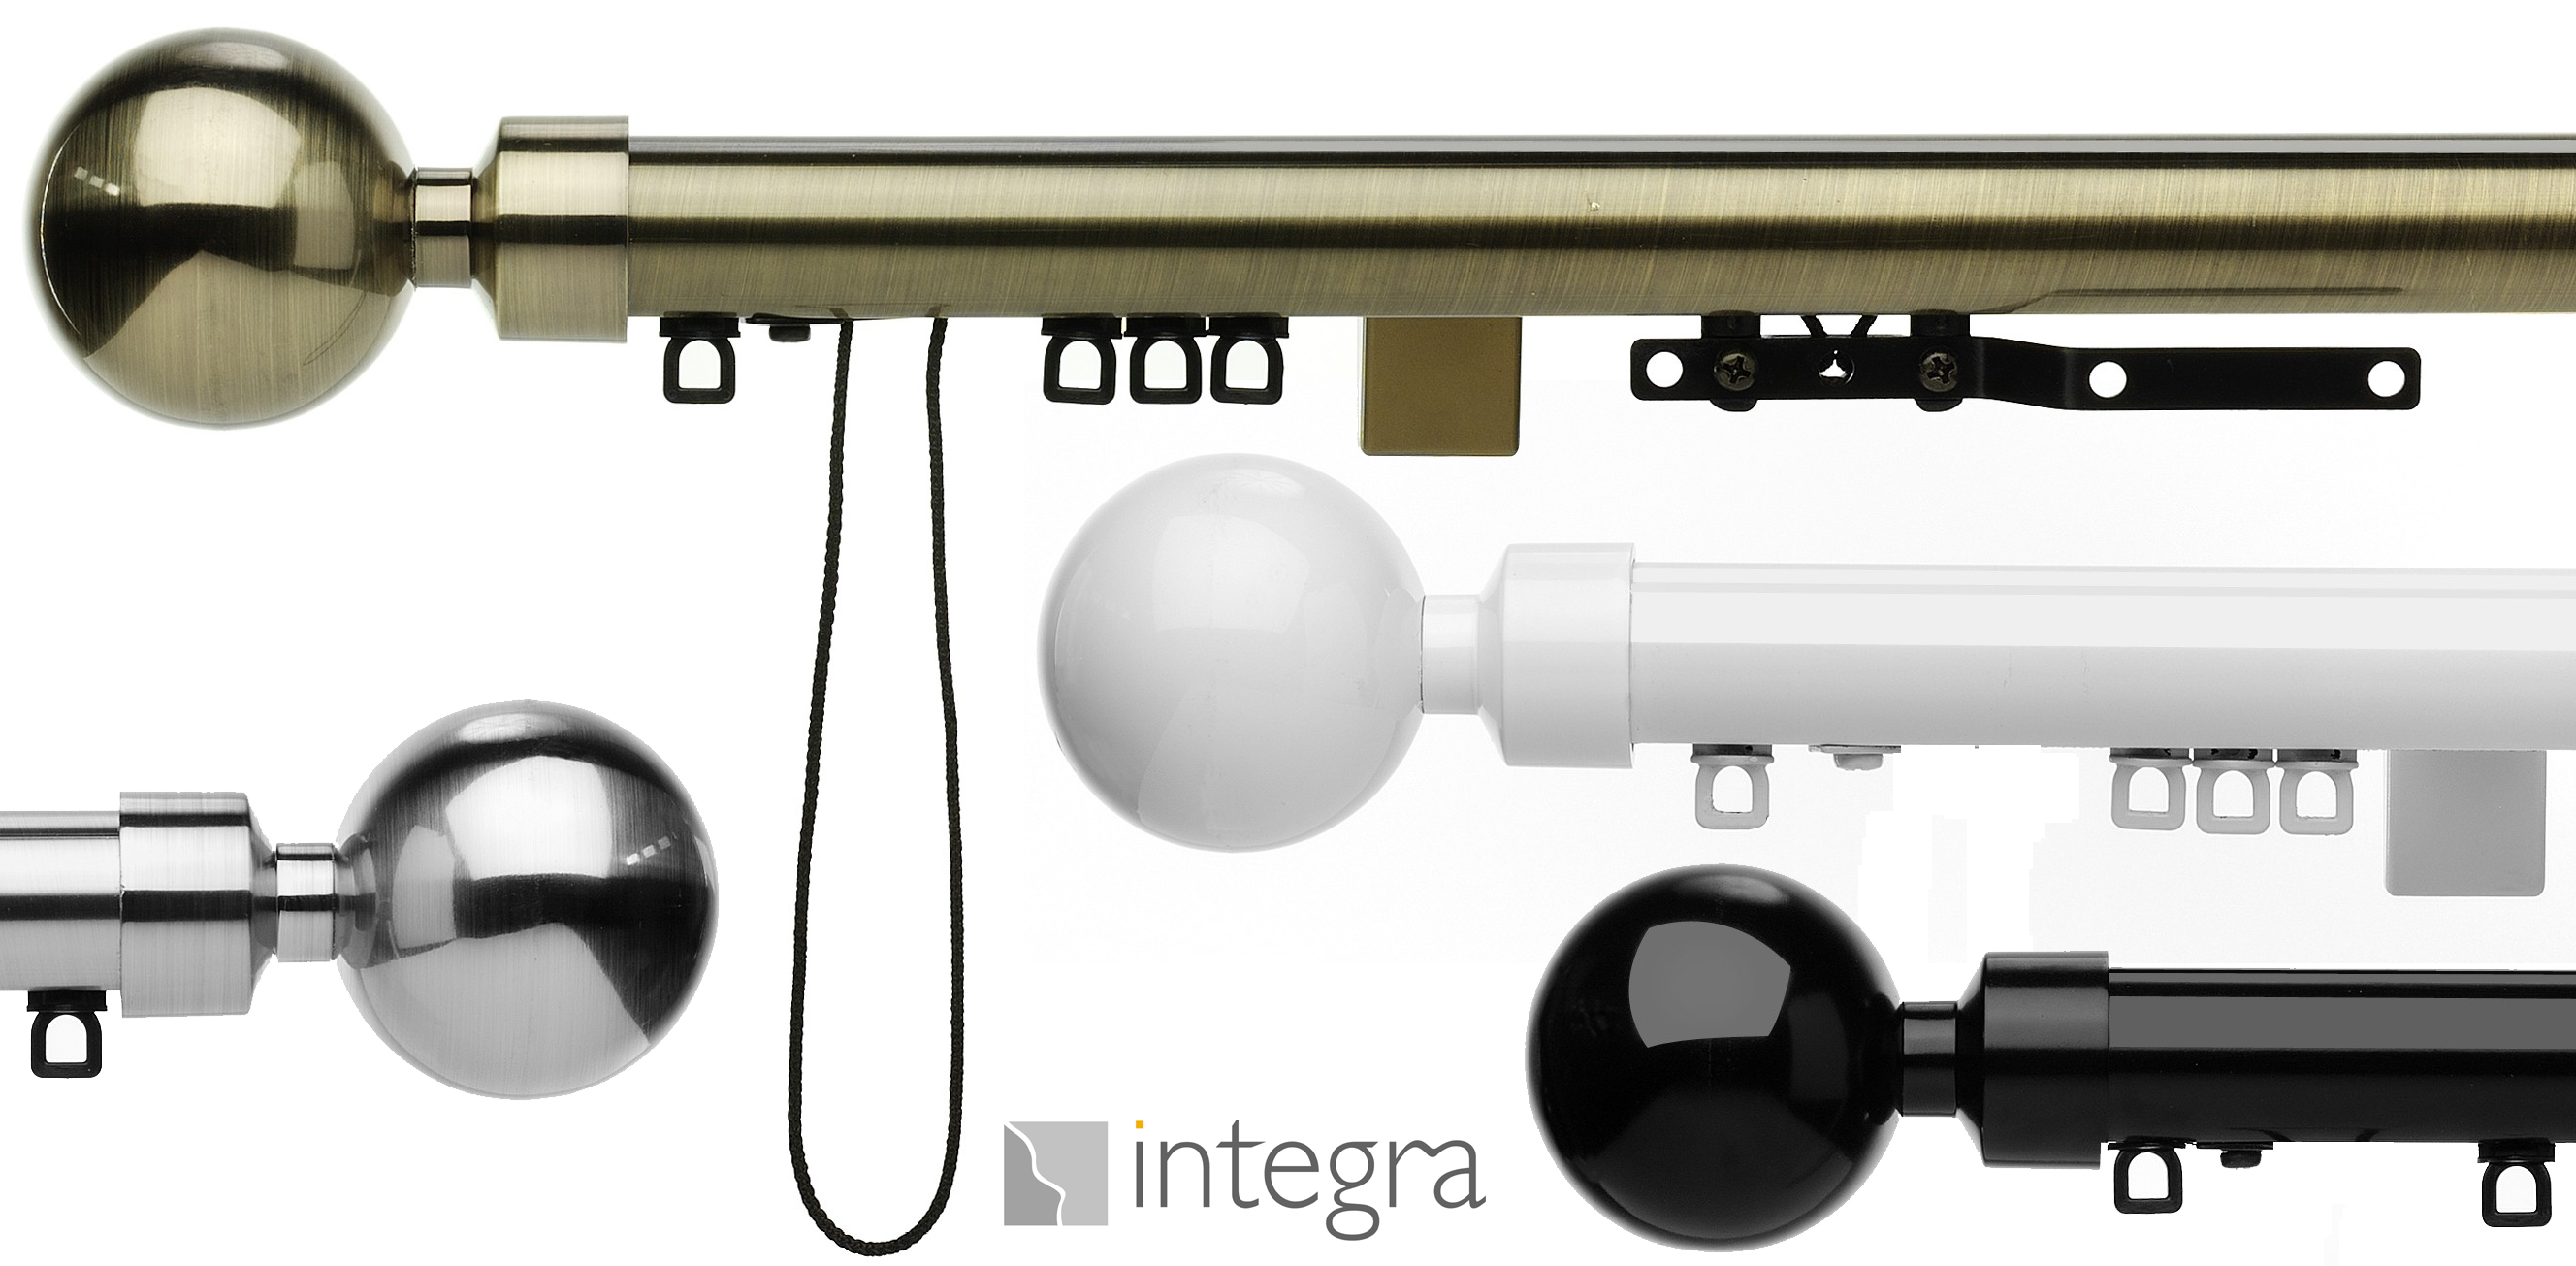 Integra Smooth Glide corded curtain pole